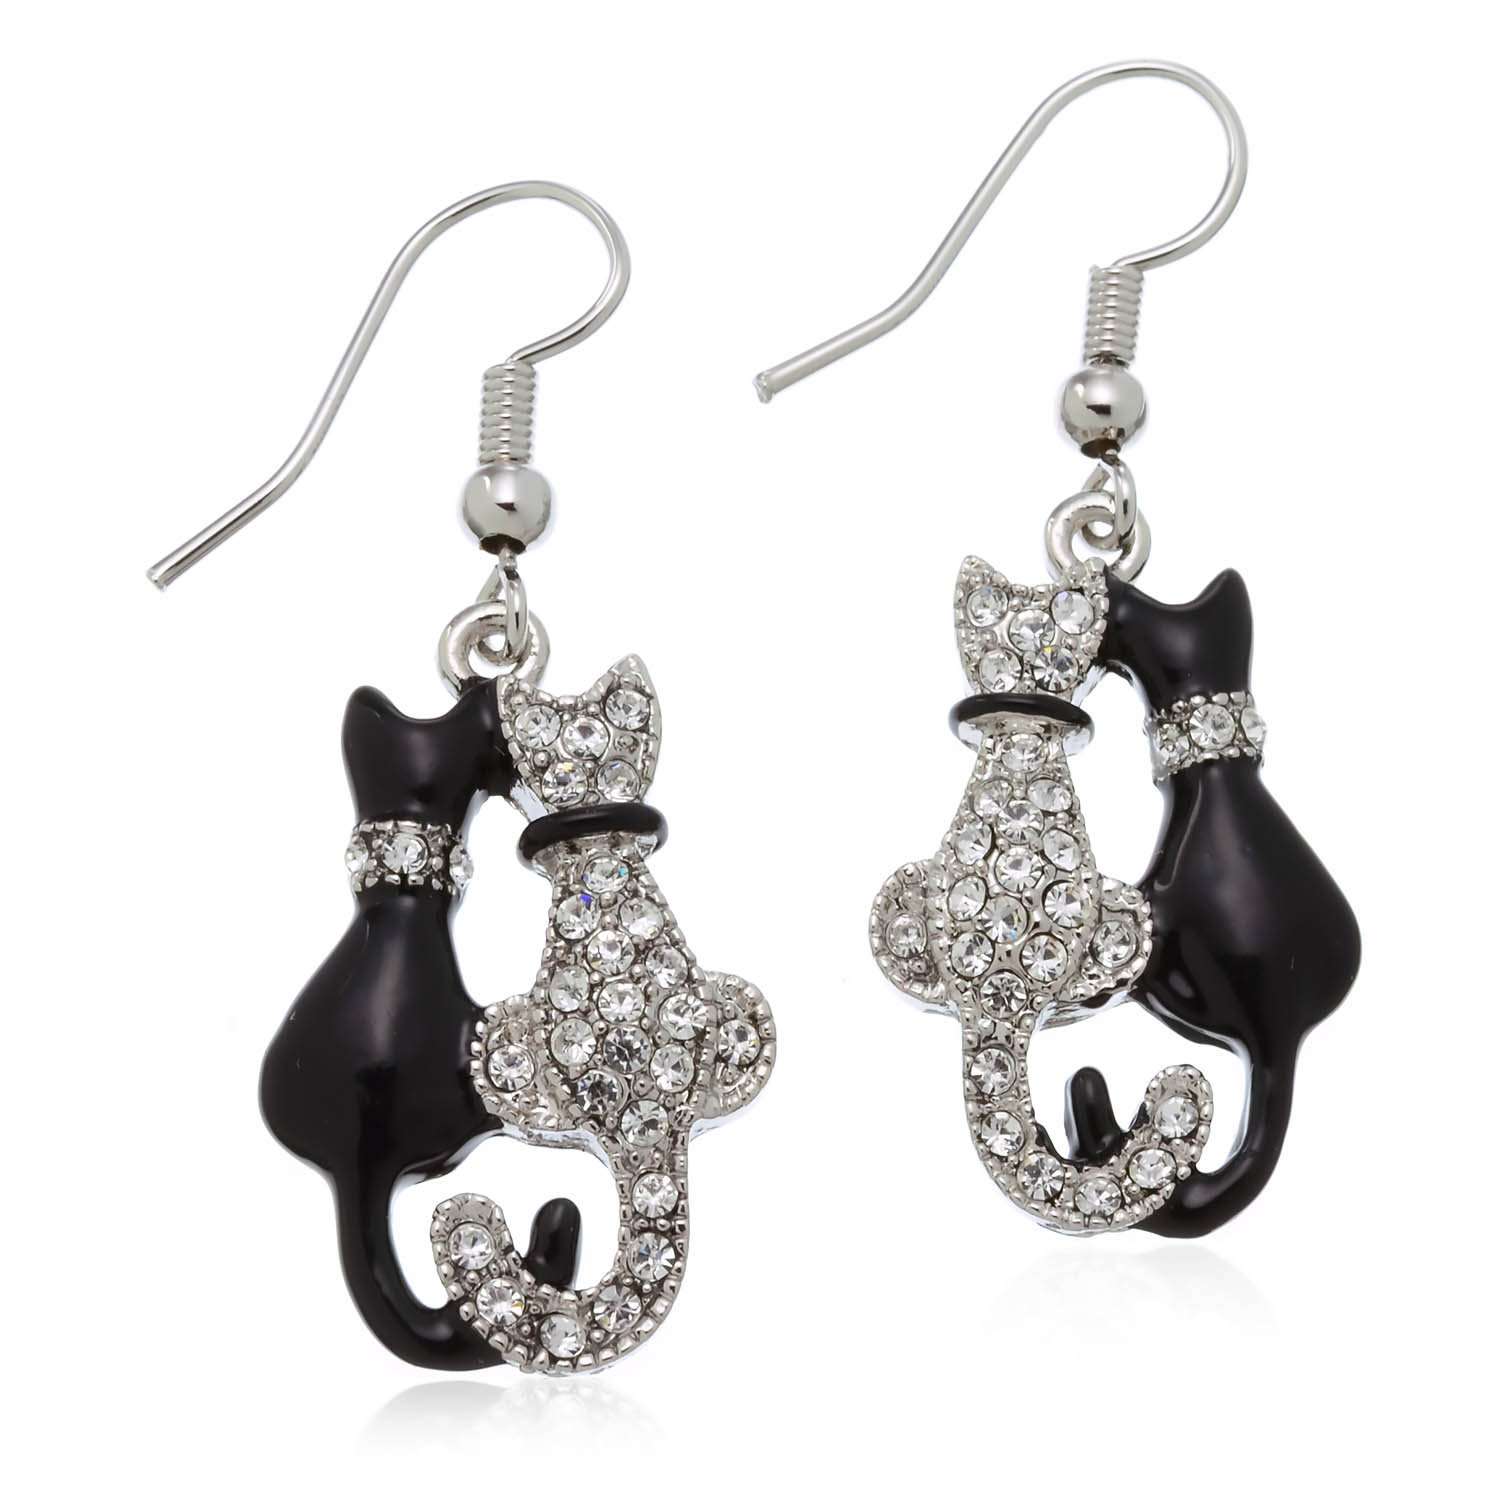 Kitty Cat Earrings PammyJ Cat Jewelry Animal Earrings for Girls